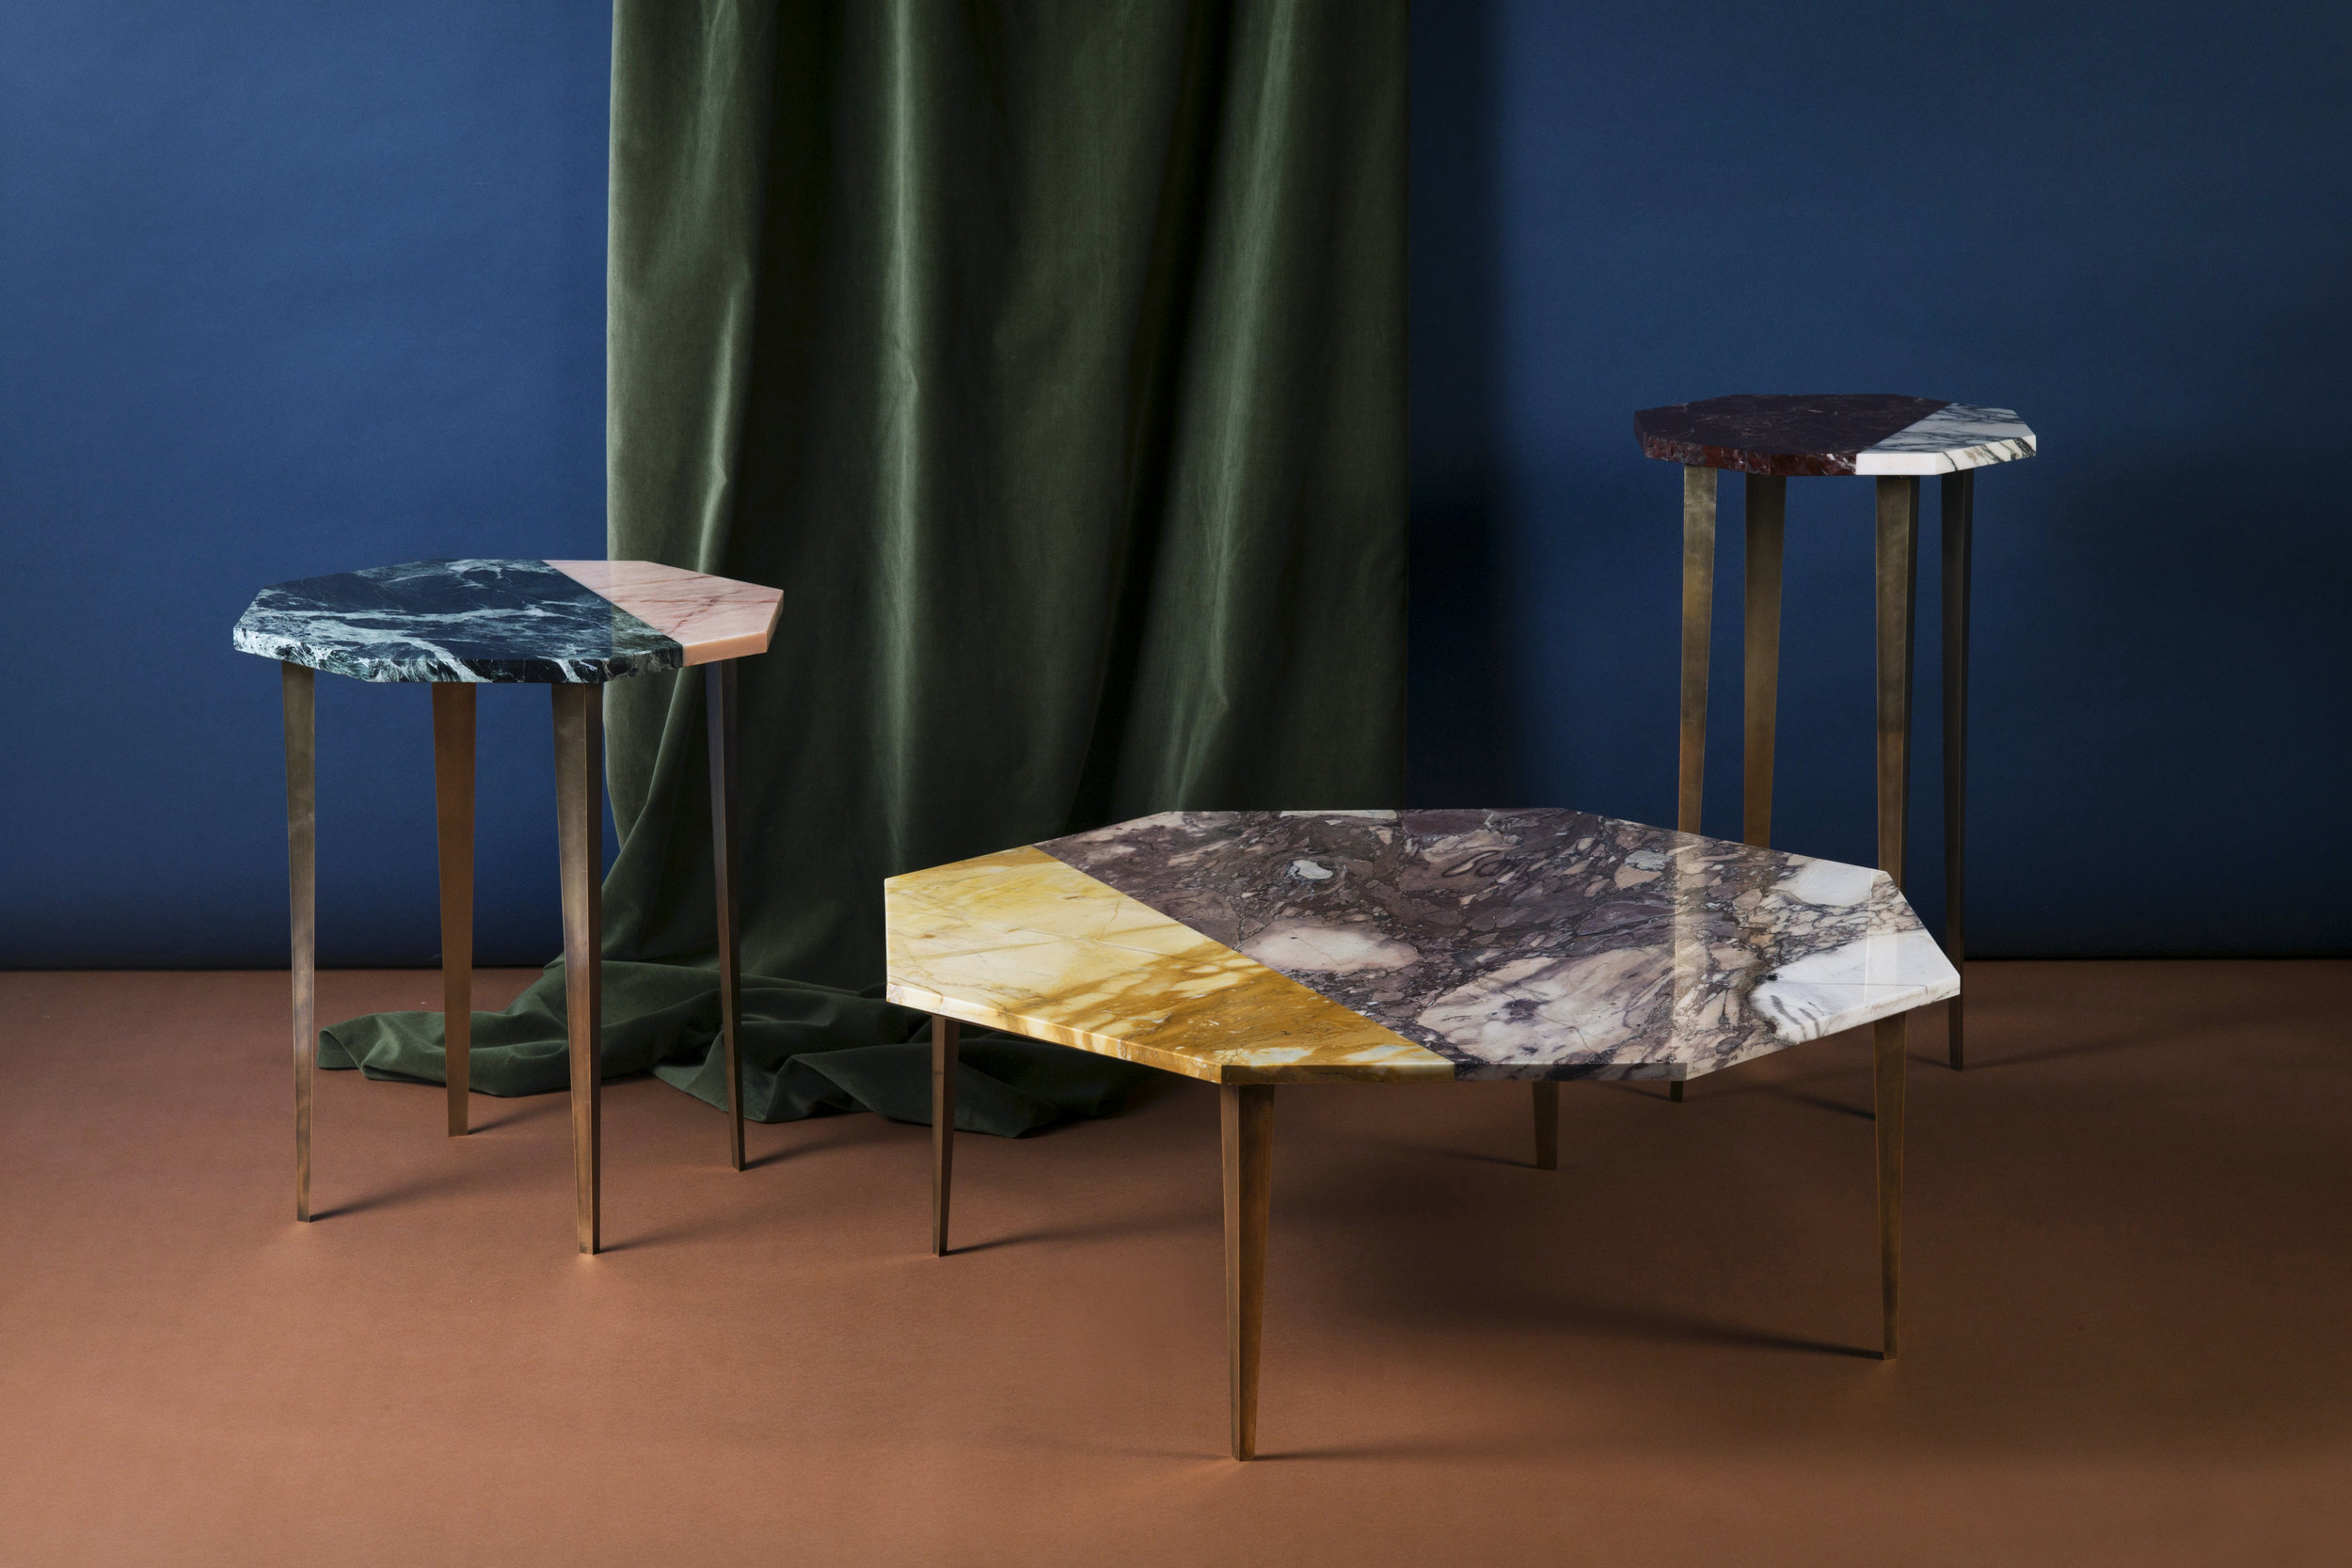 Thierry Table Collection shown at Salone del Mobile, 2017